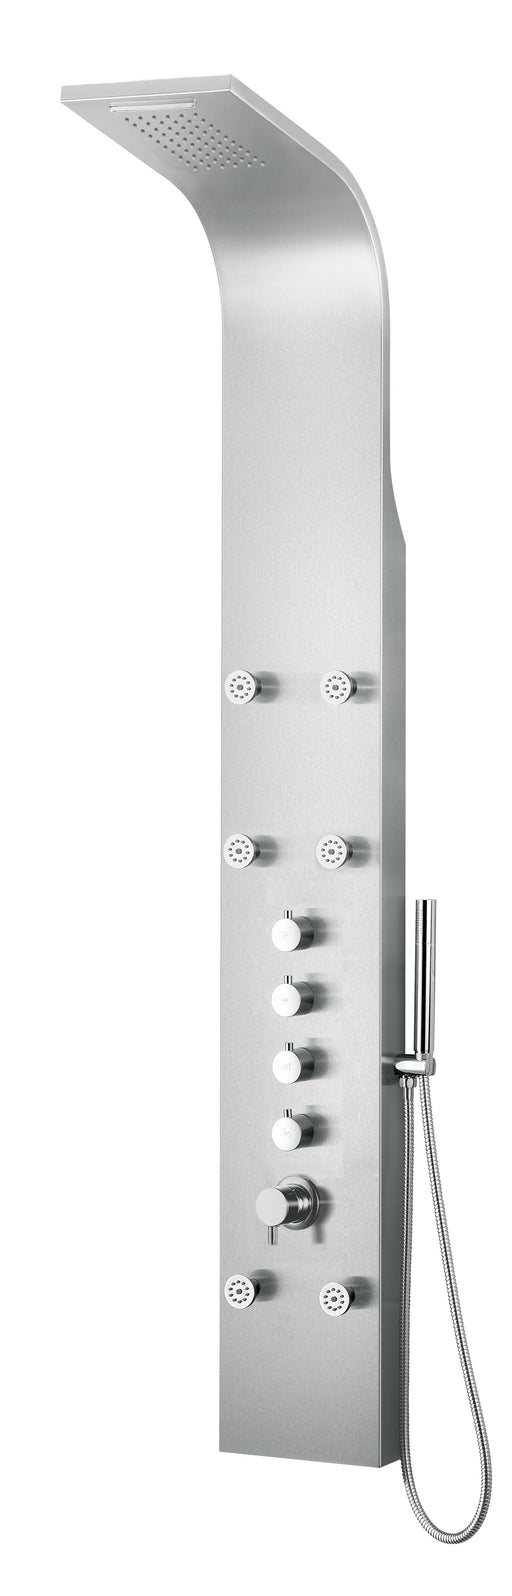 Alfi Brand ABSP40 Modern Stainless Steel Shower Panel with 6 Body Sprays-DirectSinks